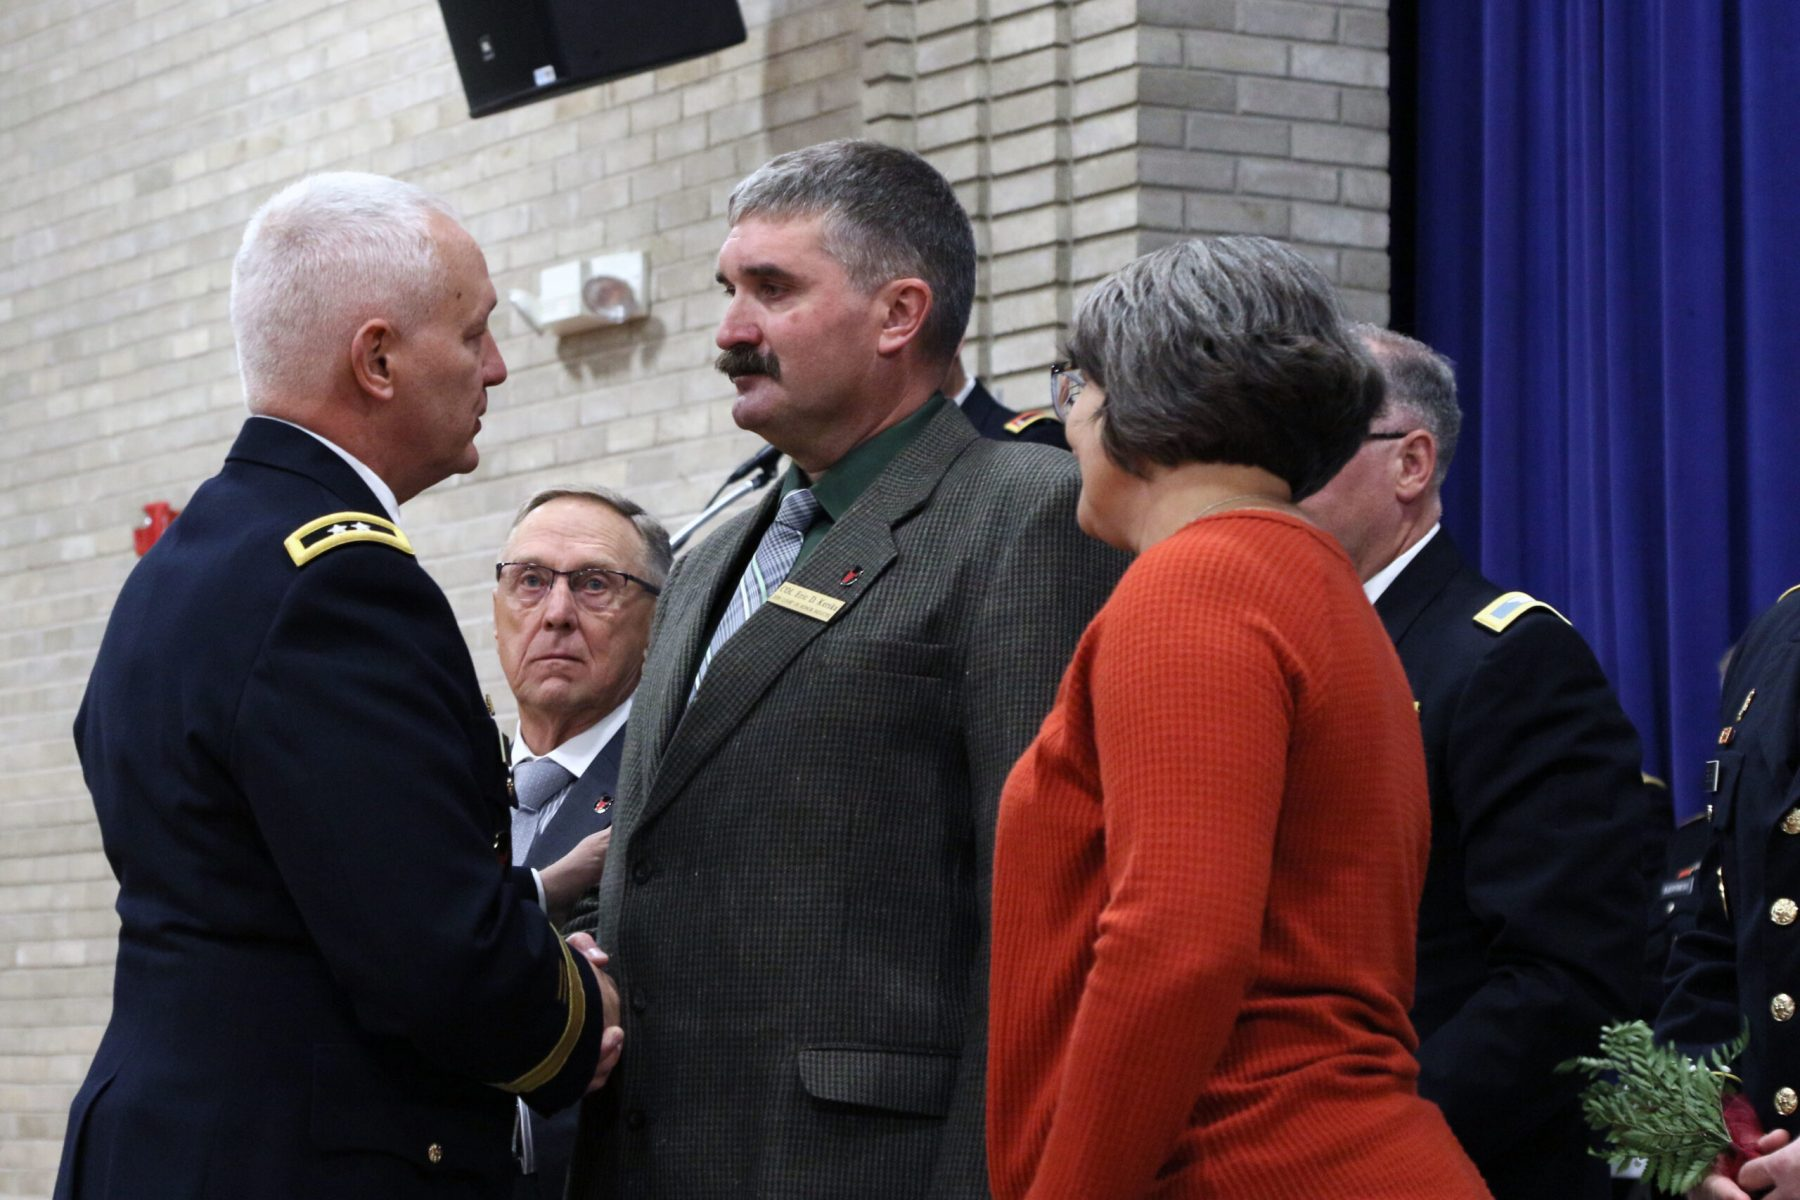 Major General Jensen shakes Colonel (Ret.) Eric D. Kreska's hand during the Court of Honor induction ceremony on Camp Ripley on October 6th 2019.